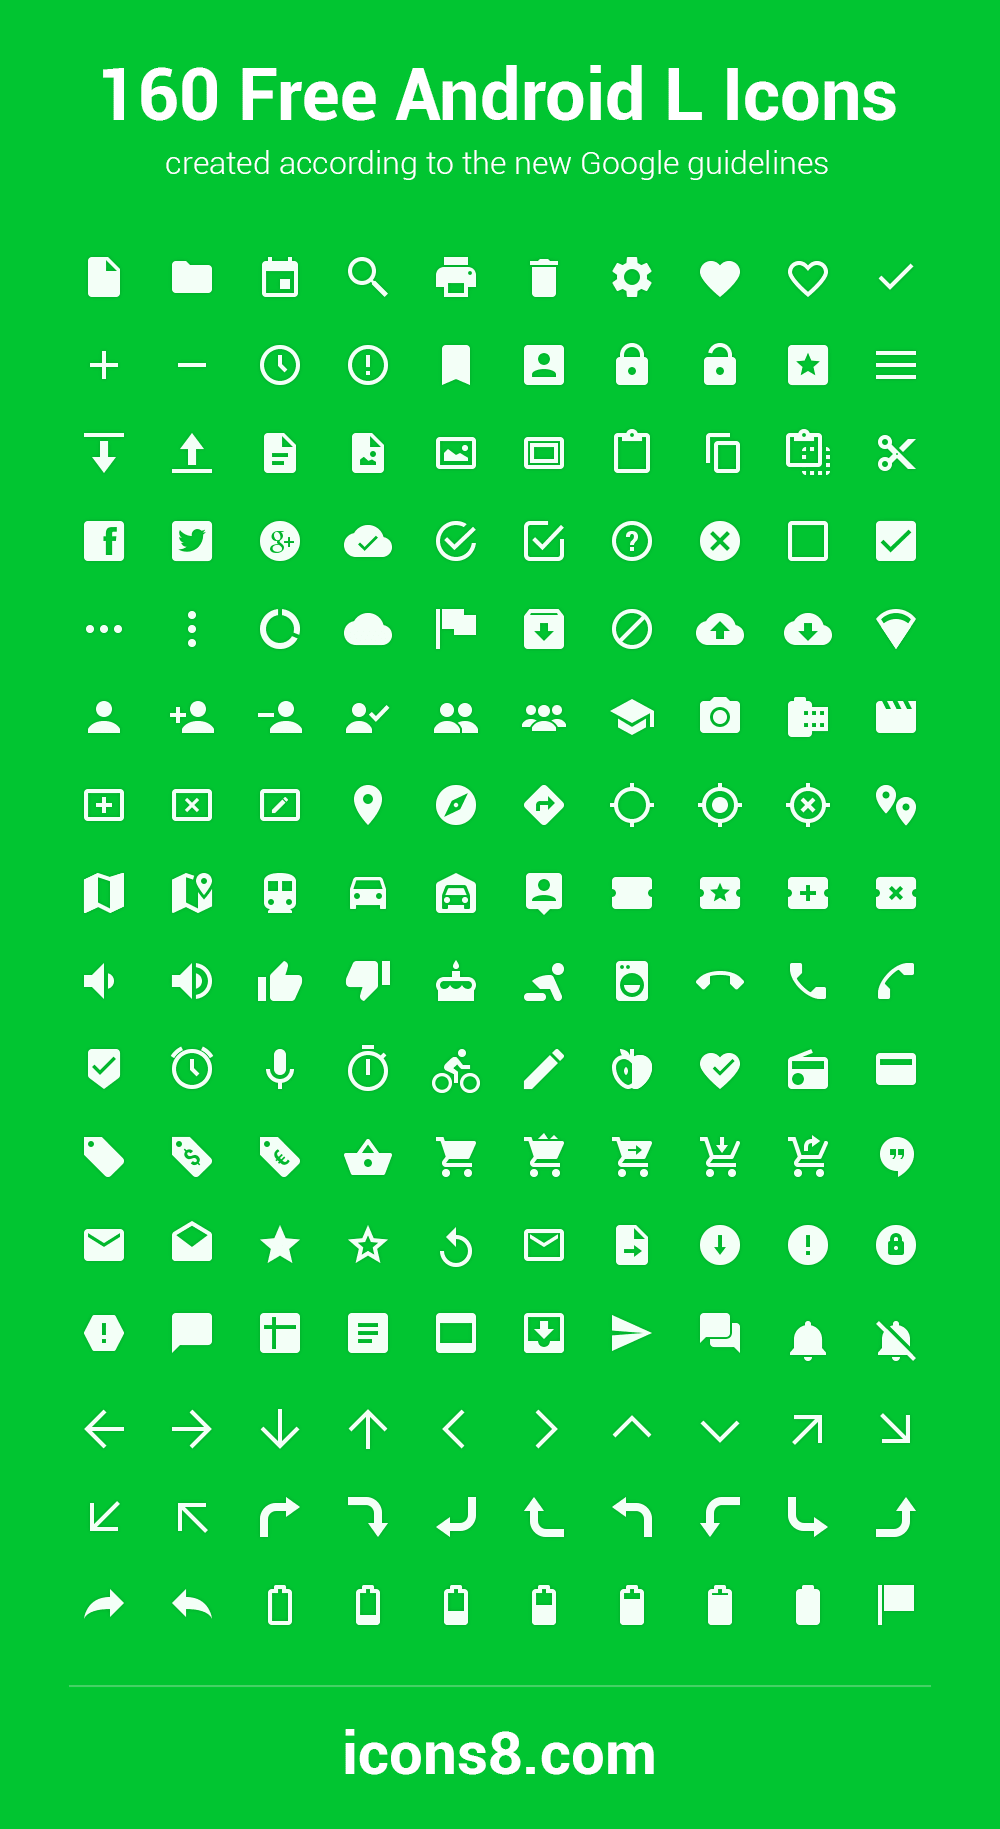 android-l-icons